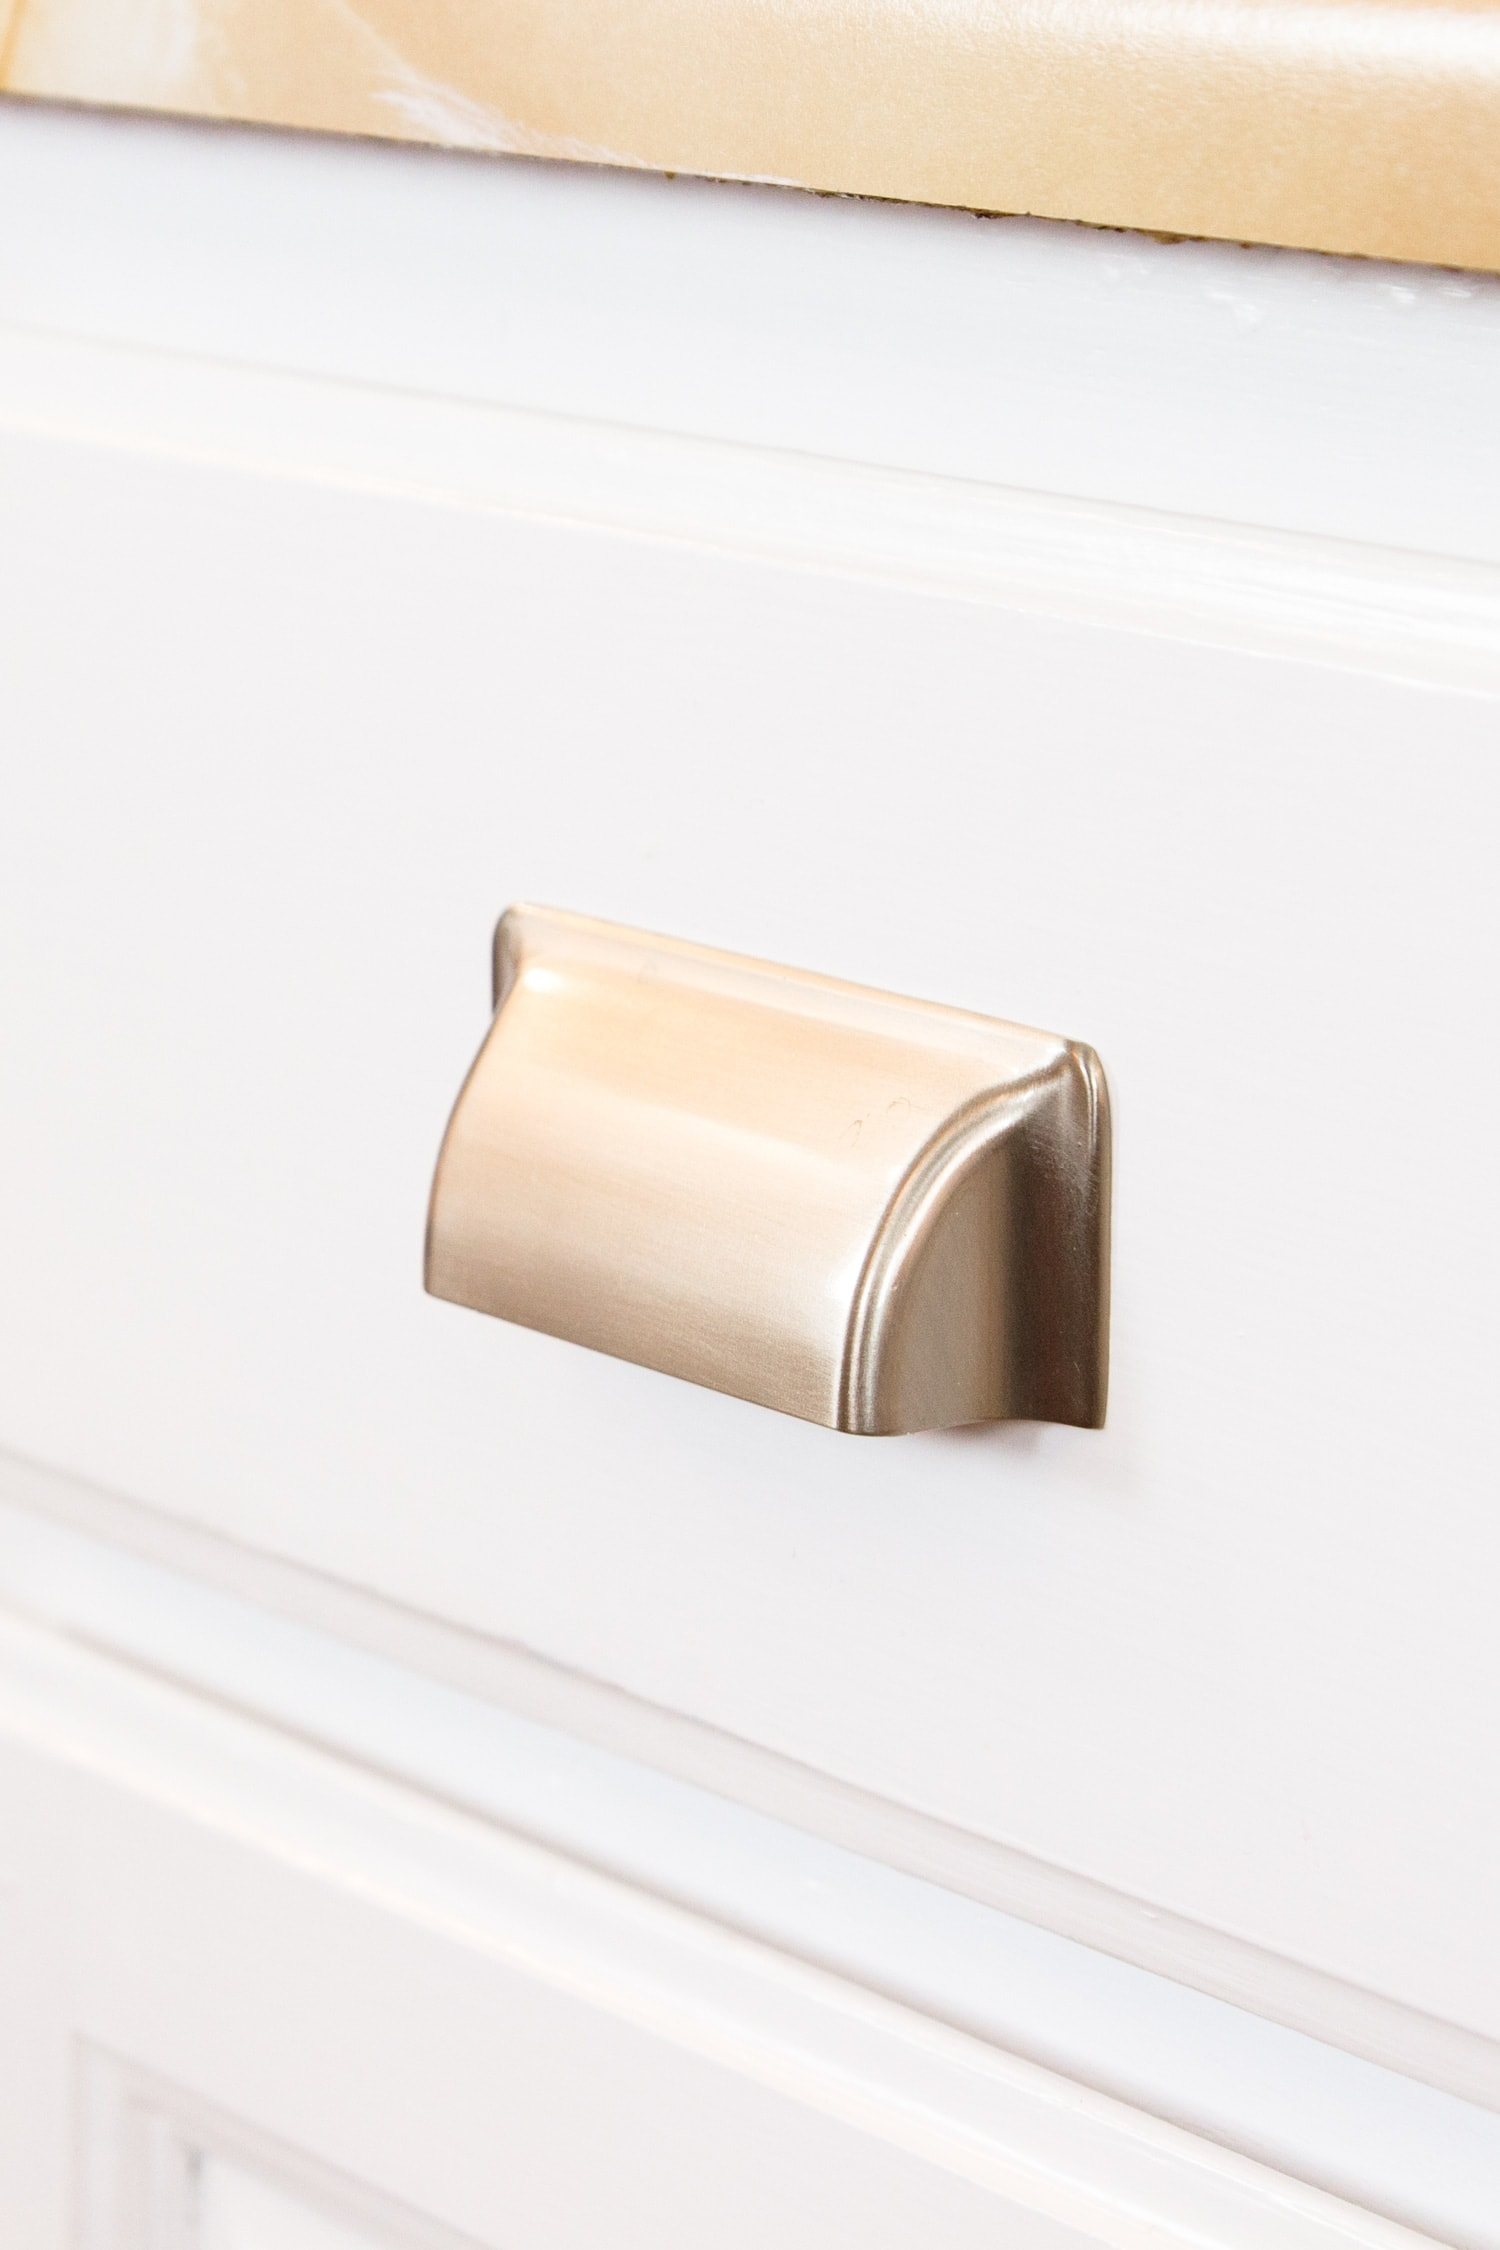 Matte silver drawer pulls attached to bright white lower kitchen cabinets